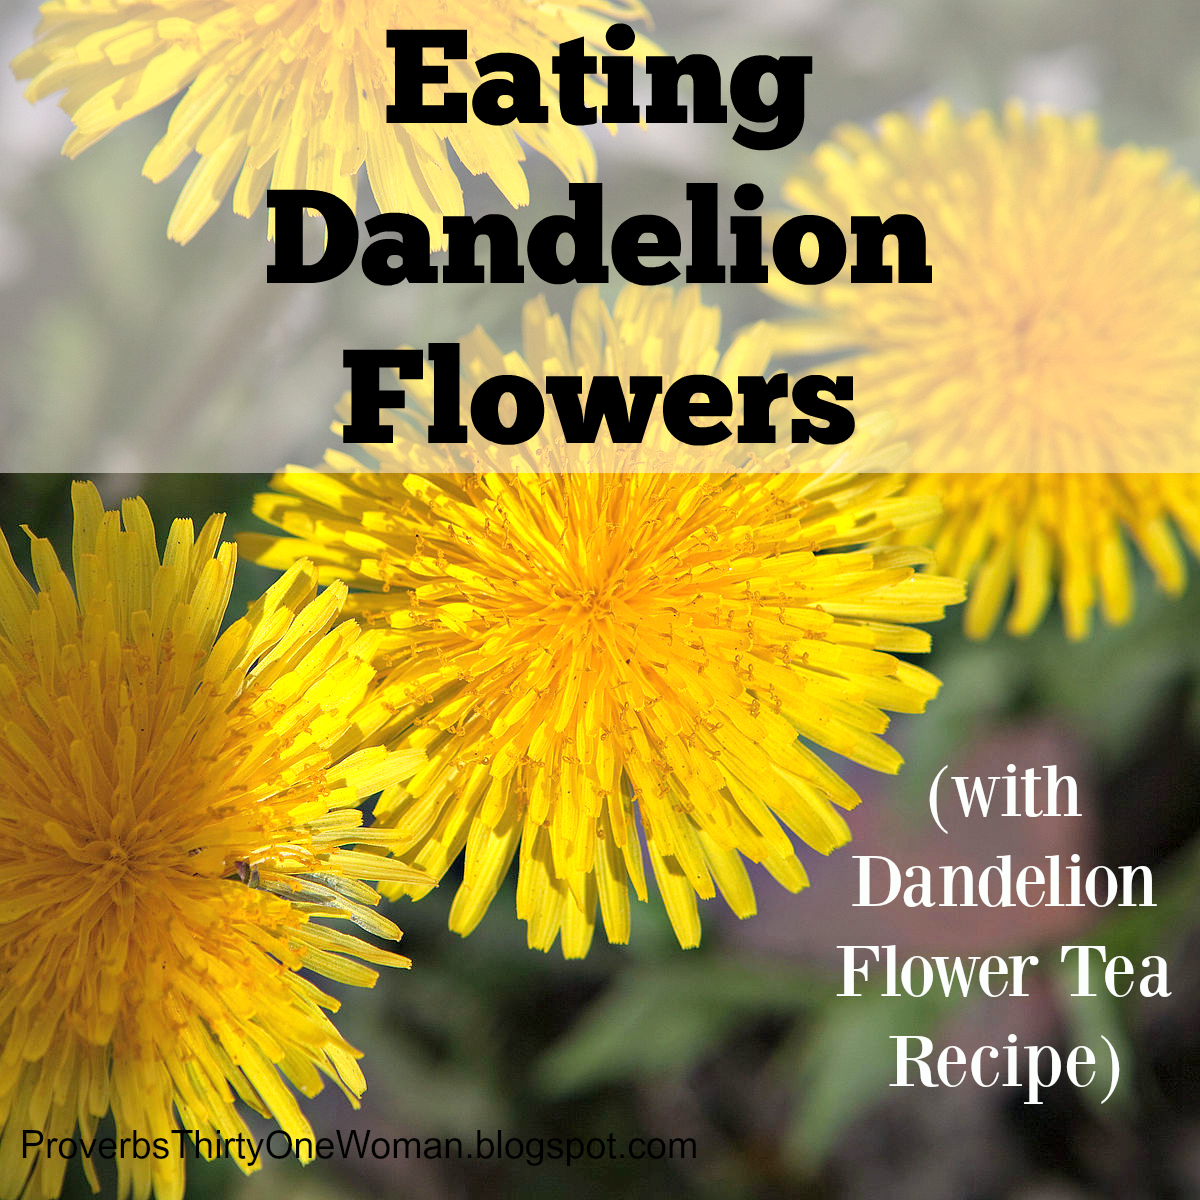 proverbs 31 woman: eating dandelion flowers (dandelion flower tea